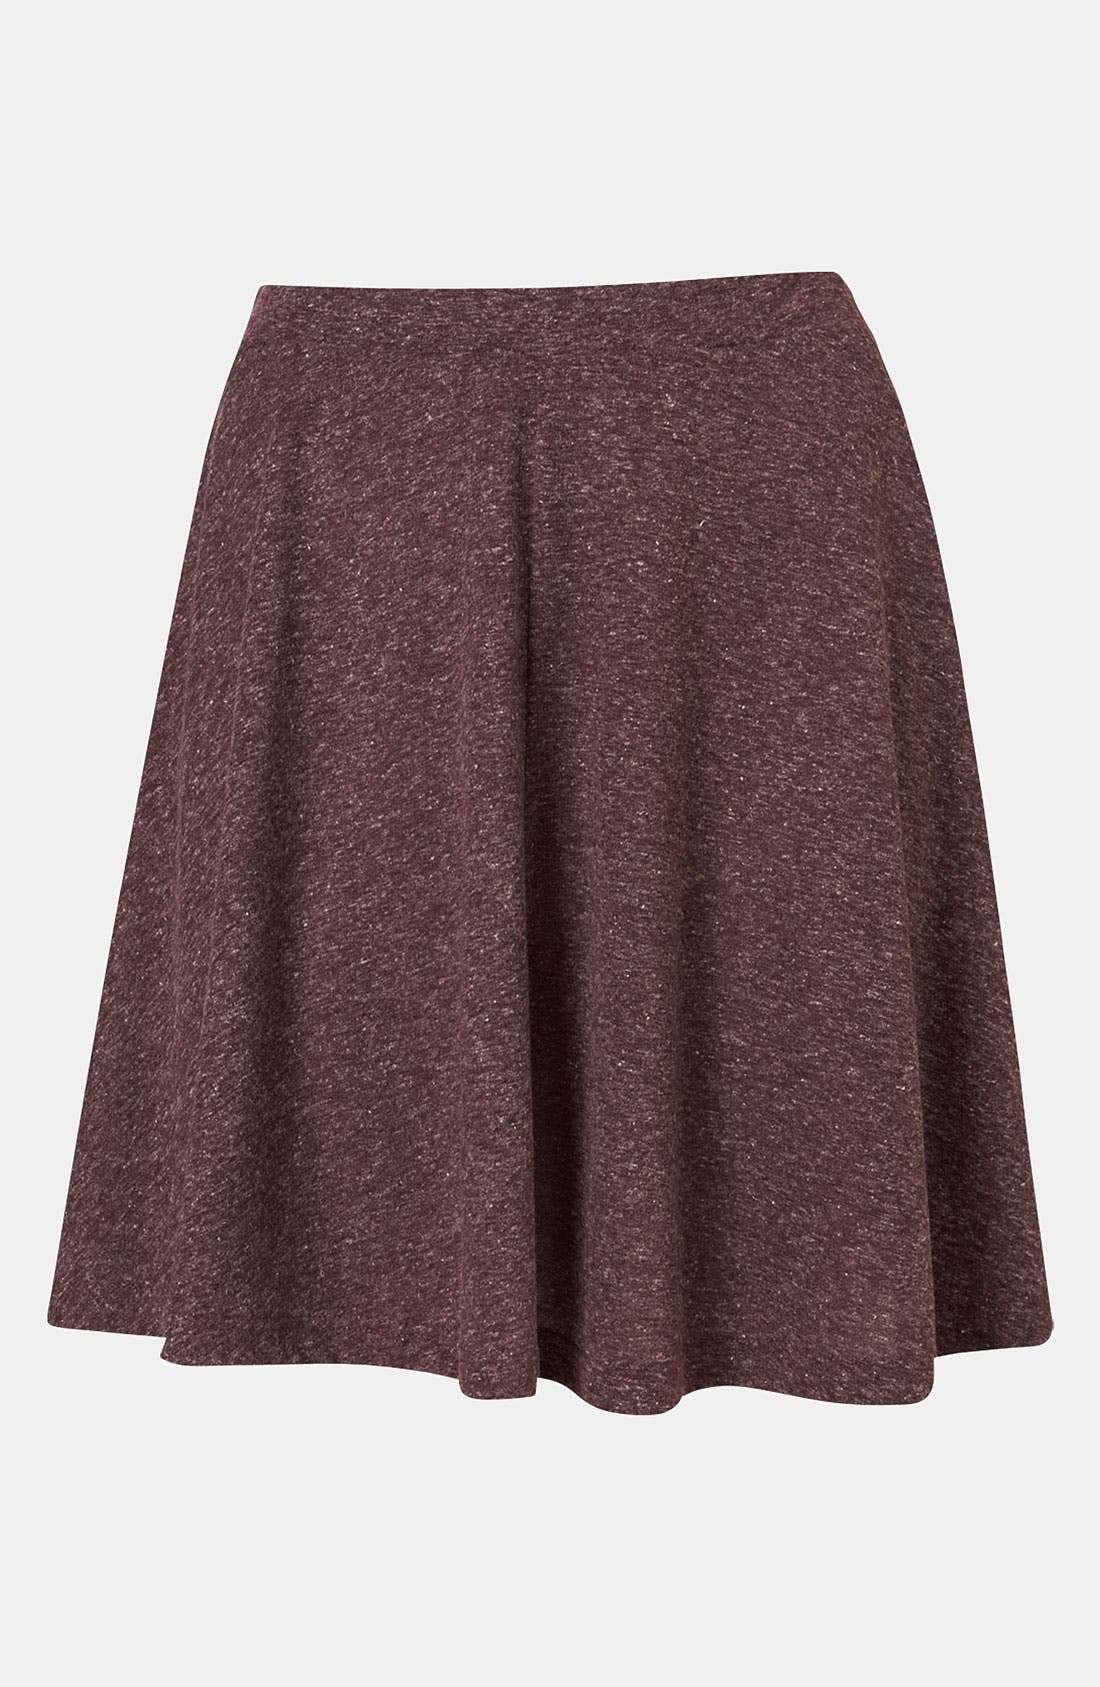 TOPSHOP 'Andie' Skater Skirt, Main, color, 602